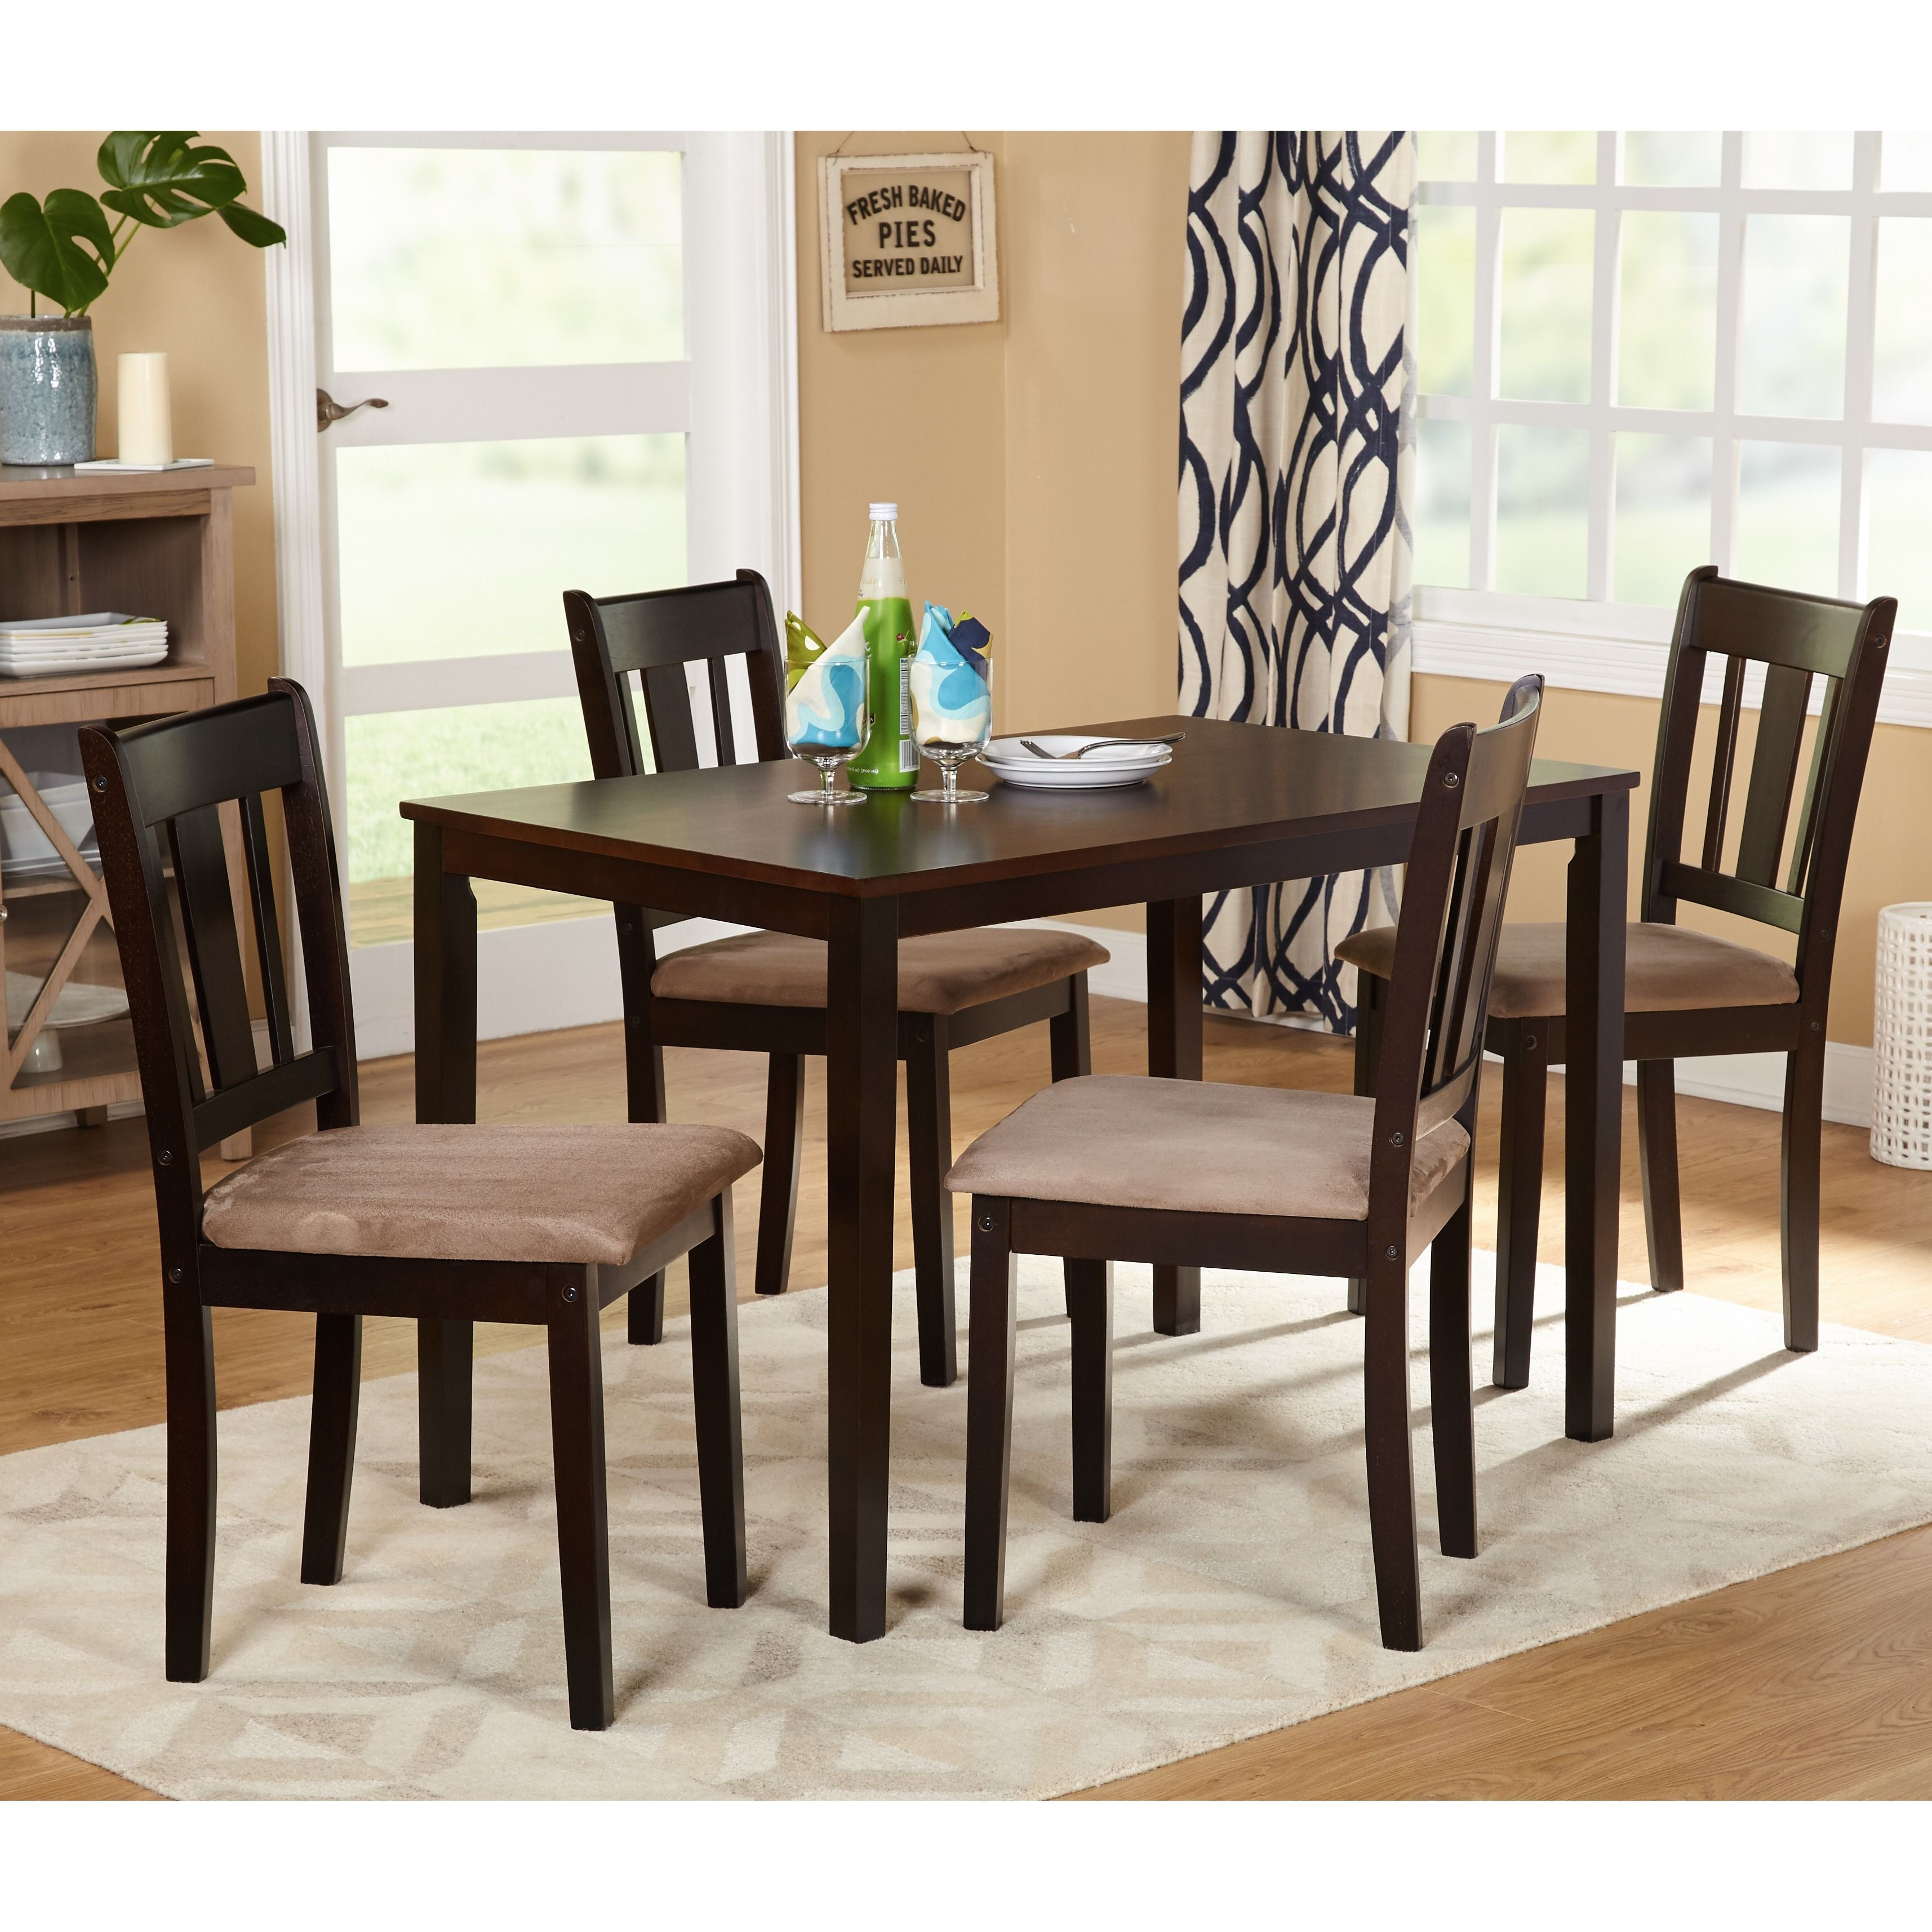 Apartment Size Dining Room Sets: Simple Living Stratton 5-Piece Dining Set, Brown, Size 5